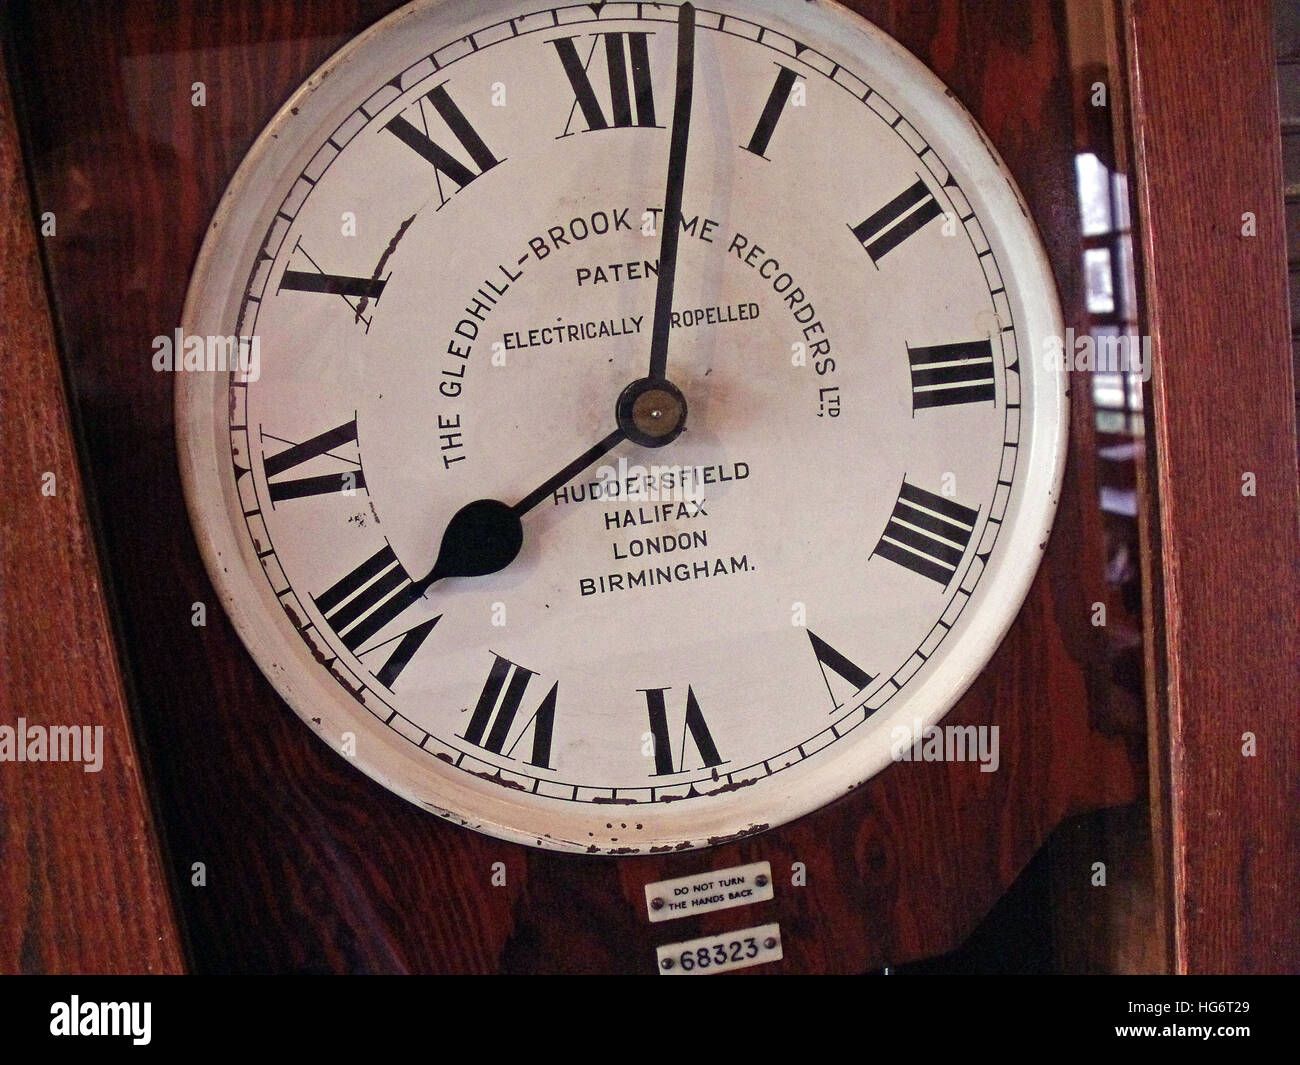 wood,hands,hand,mechanical,time,recorder,recorders,punch,in,Machine,Gledhill,Brook,Time Recorders,Clocking In,GoTonySmith,@HotpixUK,Tony,Smith,UK,GB,Great,Britain,United,Kingdom,Scotish,Scottish,Scotch,British,Scotland,Alba,problem,with,problem with,issue with,Buy Pictures of,Buy Images Of,Images of,Stock Images,Tony Smith,United Kingdom,Great Britain,British Isles